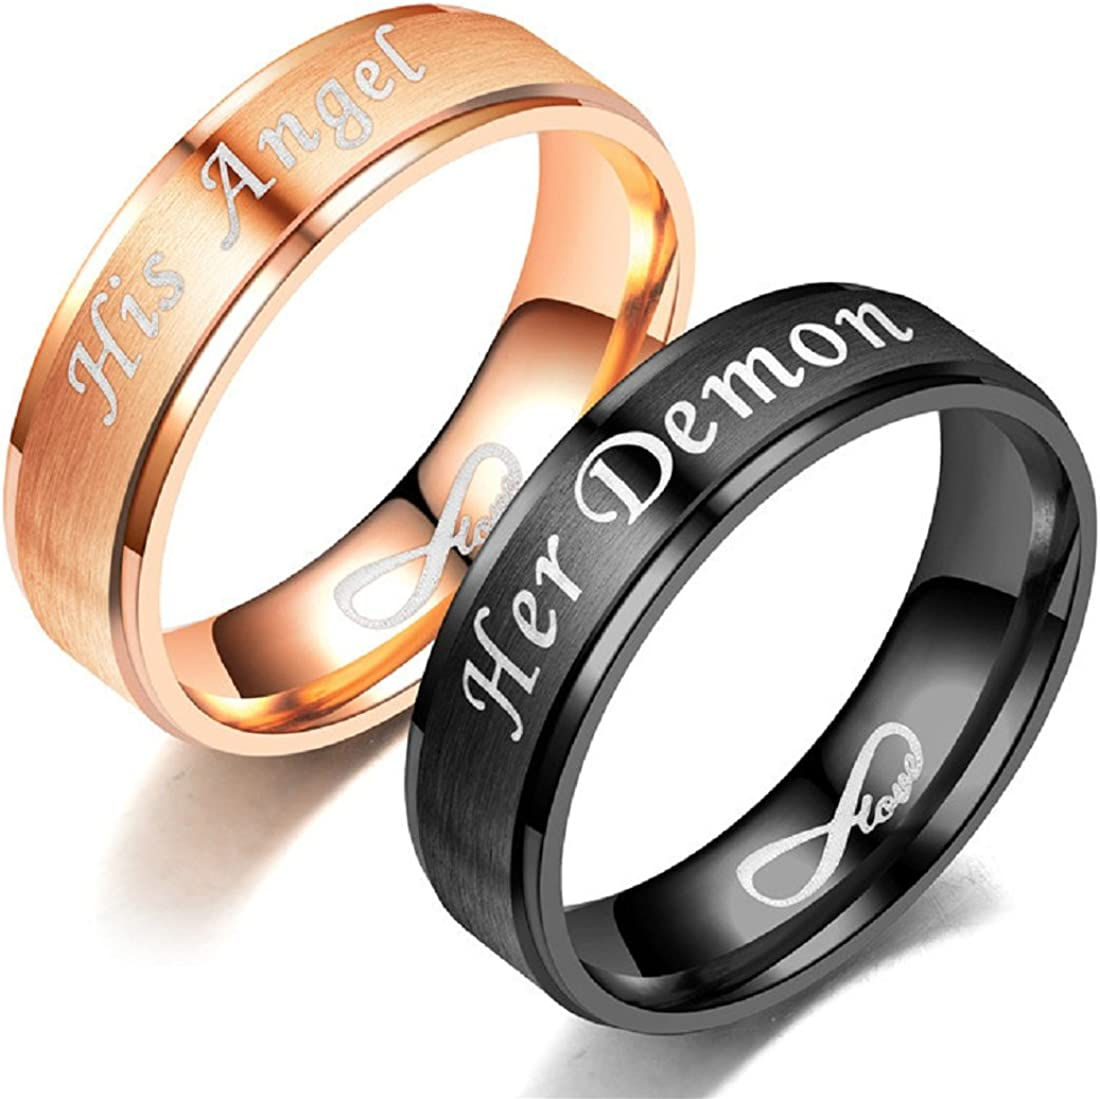 Blowin His Angel Her Demon Love Infinity Relationship Ring Stainless Steel Engagement Wedding Band For Women Men Amazon Ca Jewelry